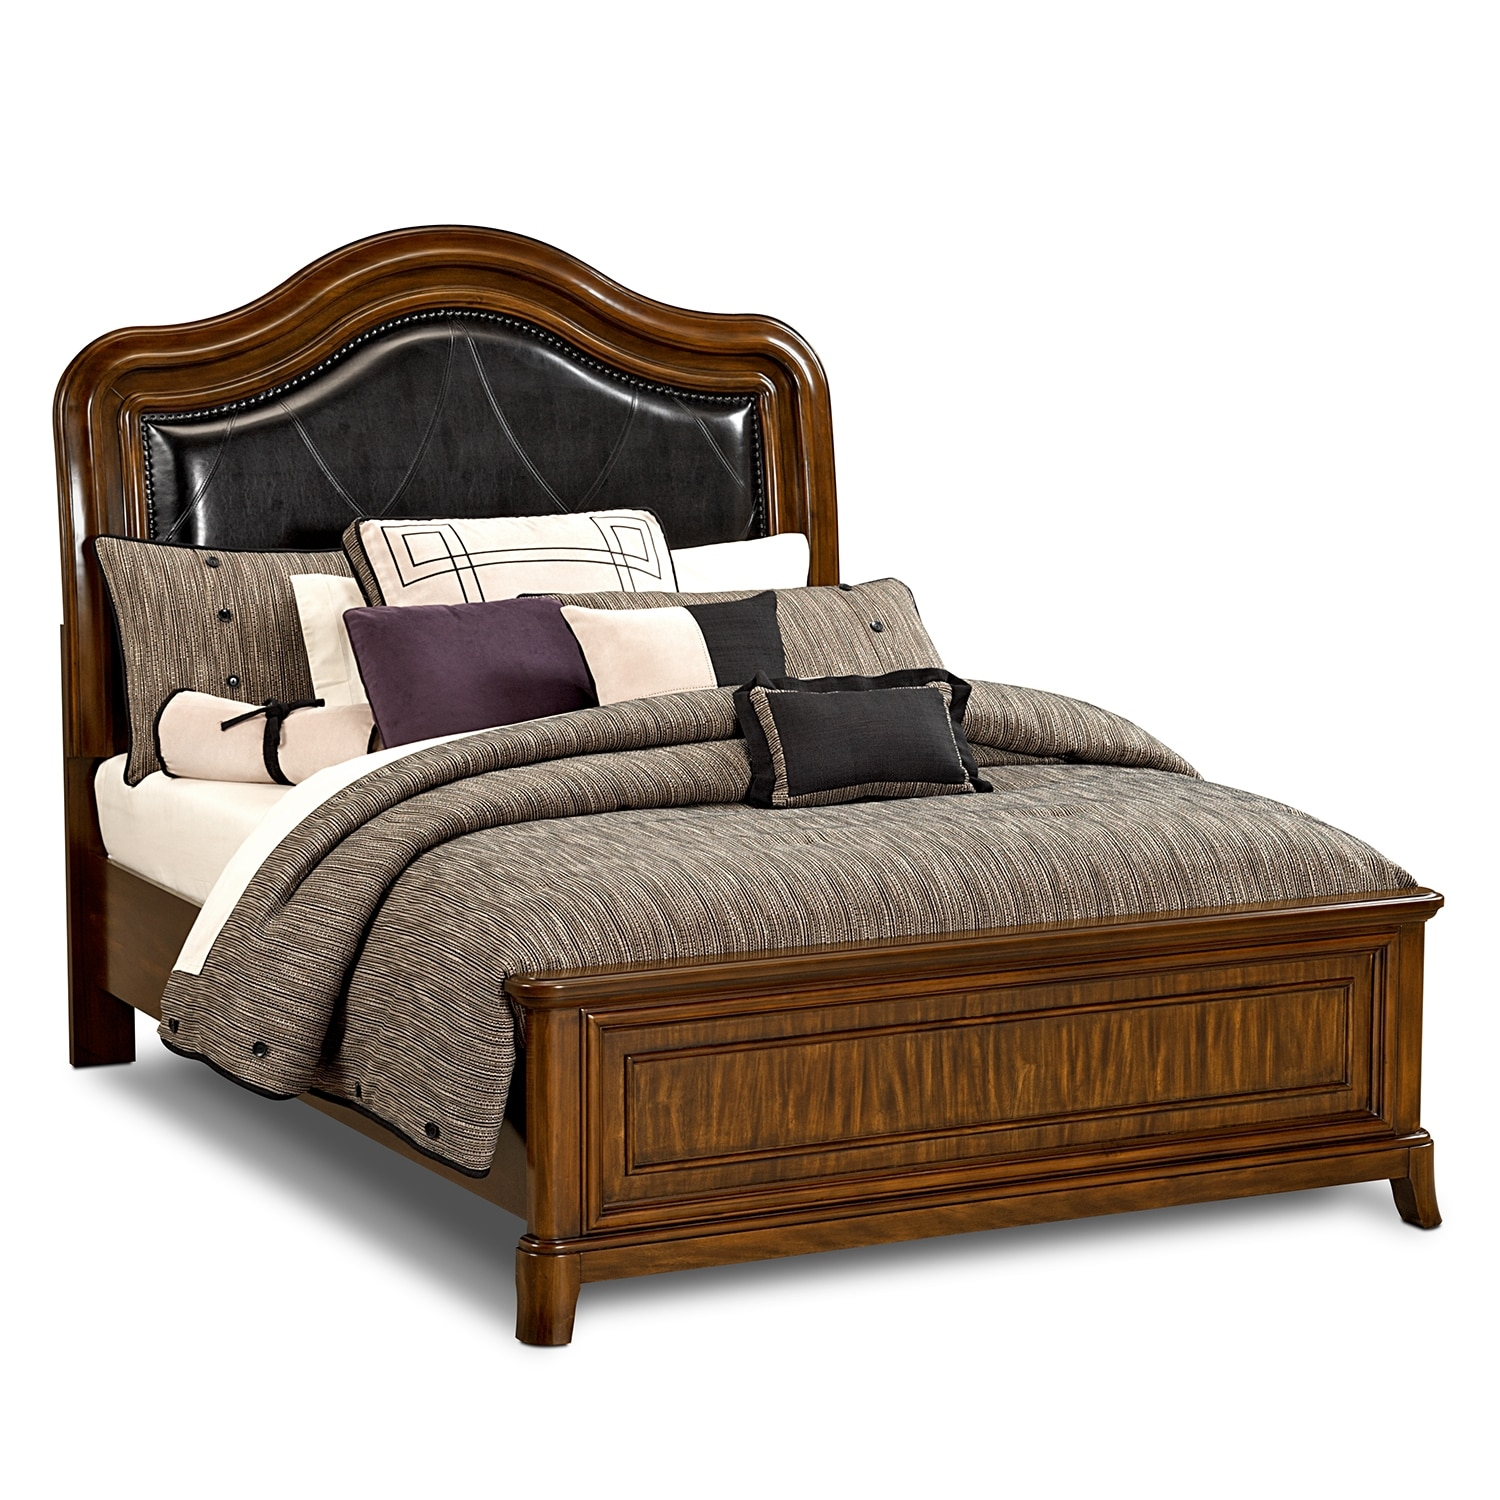 Bedroom furniture kingston queen bed for Furniture kingston